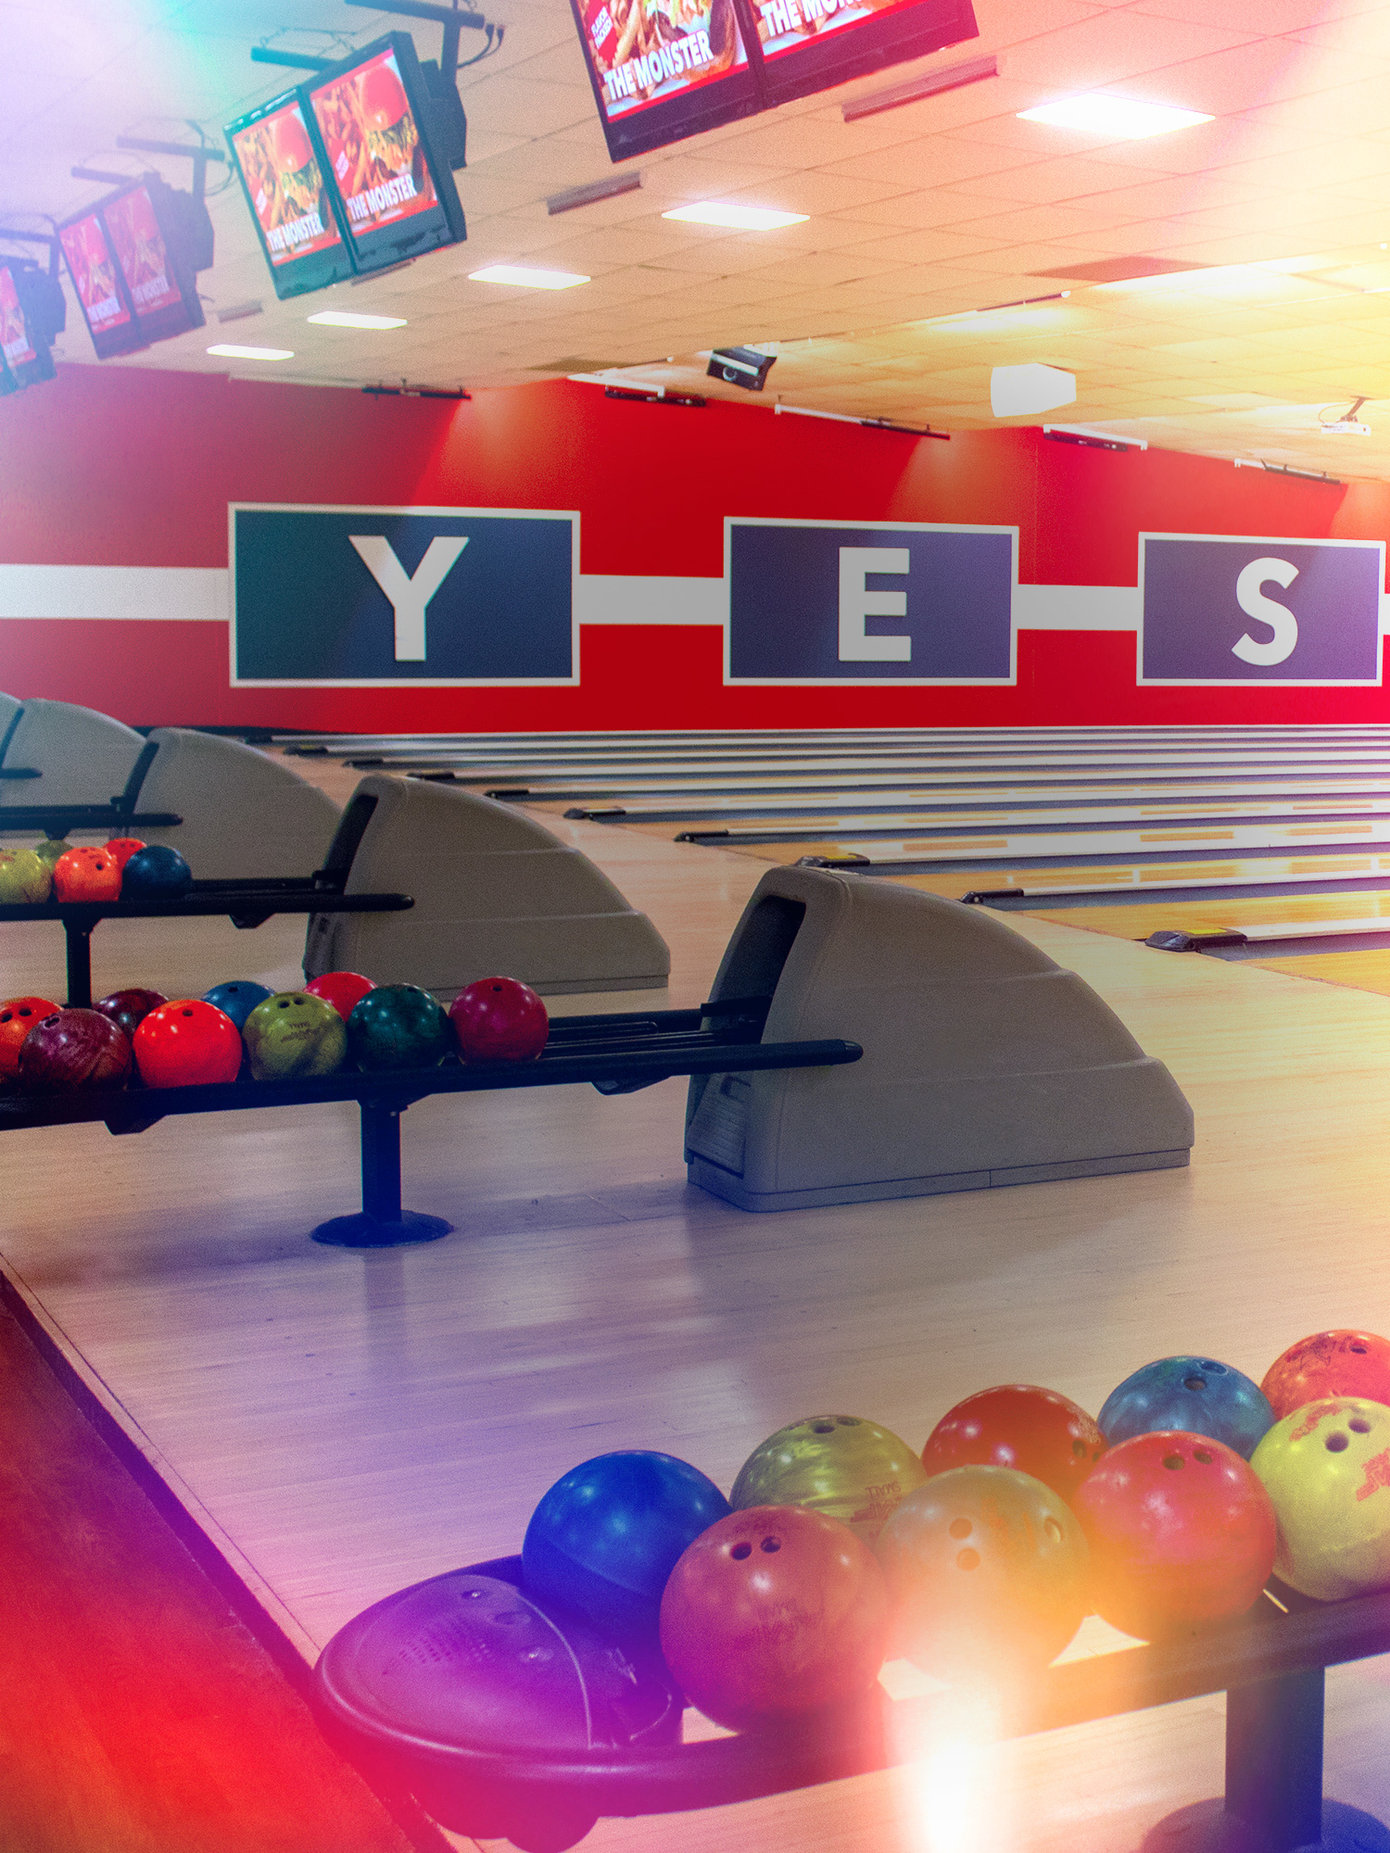 bowling lanes with the word Yes on the wall